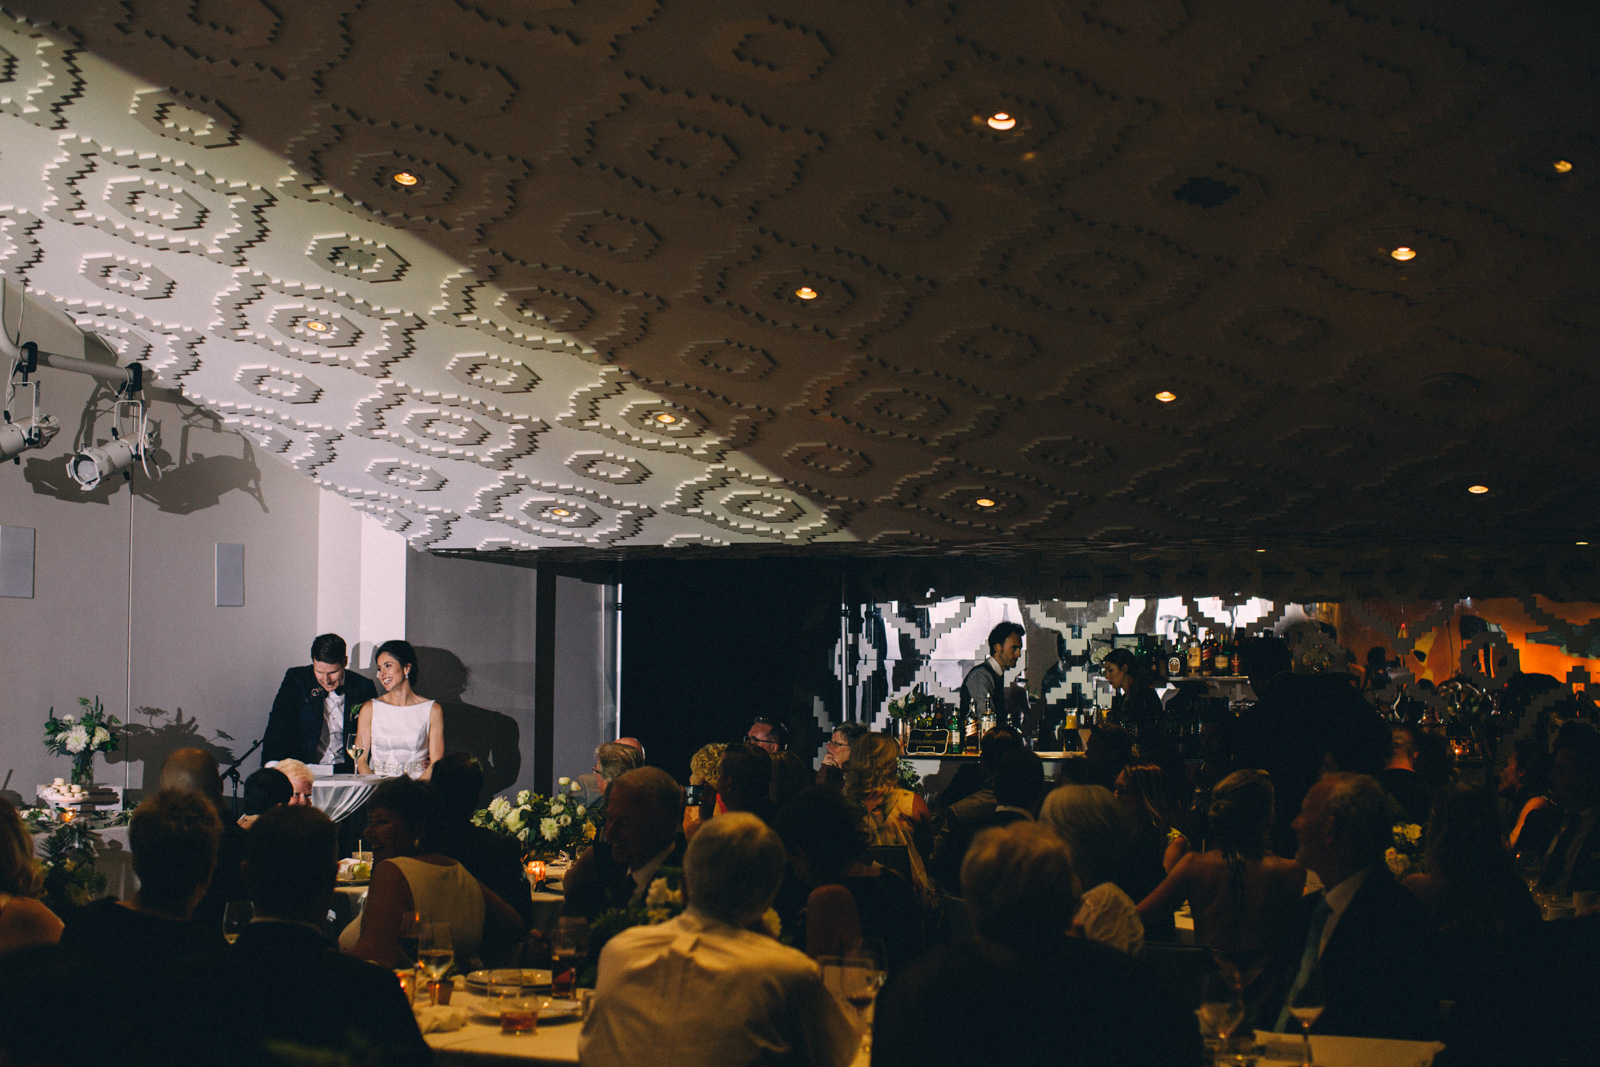 Malaparte-wedding-photography-Toronto-by-Sam-Wong-of-Artanis-Collective_71.jpg